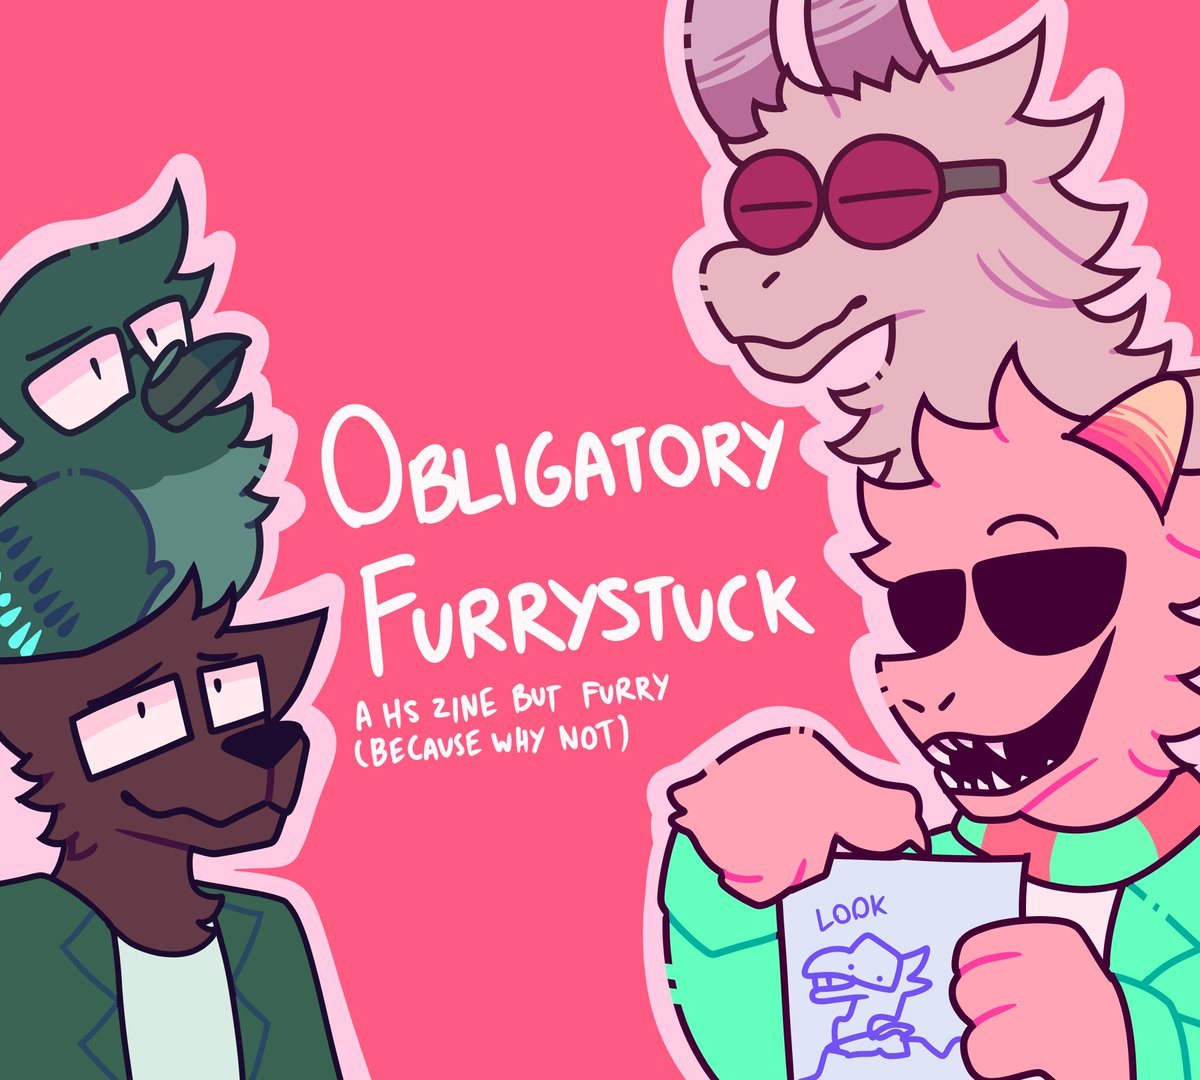 Obligatory Furrystuck is a Homestuck/Hiveswap zine about, well, furries! Artists, writers and cosplayers are all welcome! Applications open soon <br>http://pic.twitter.com/W7xWn7dtoY